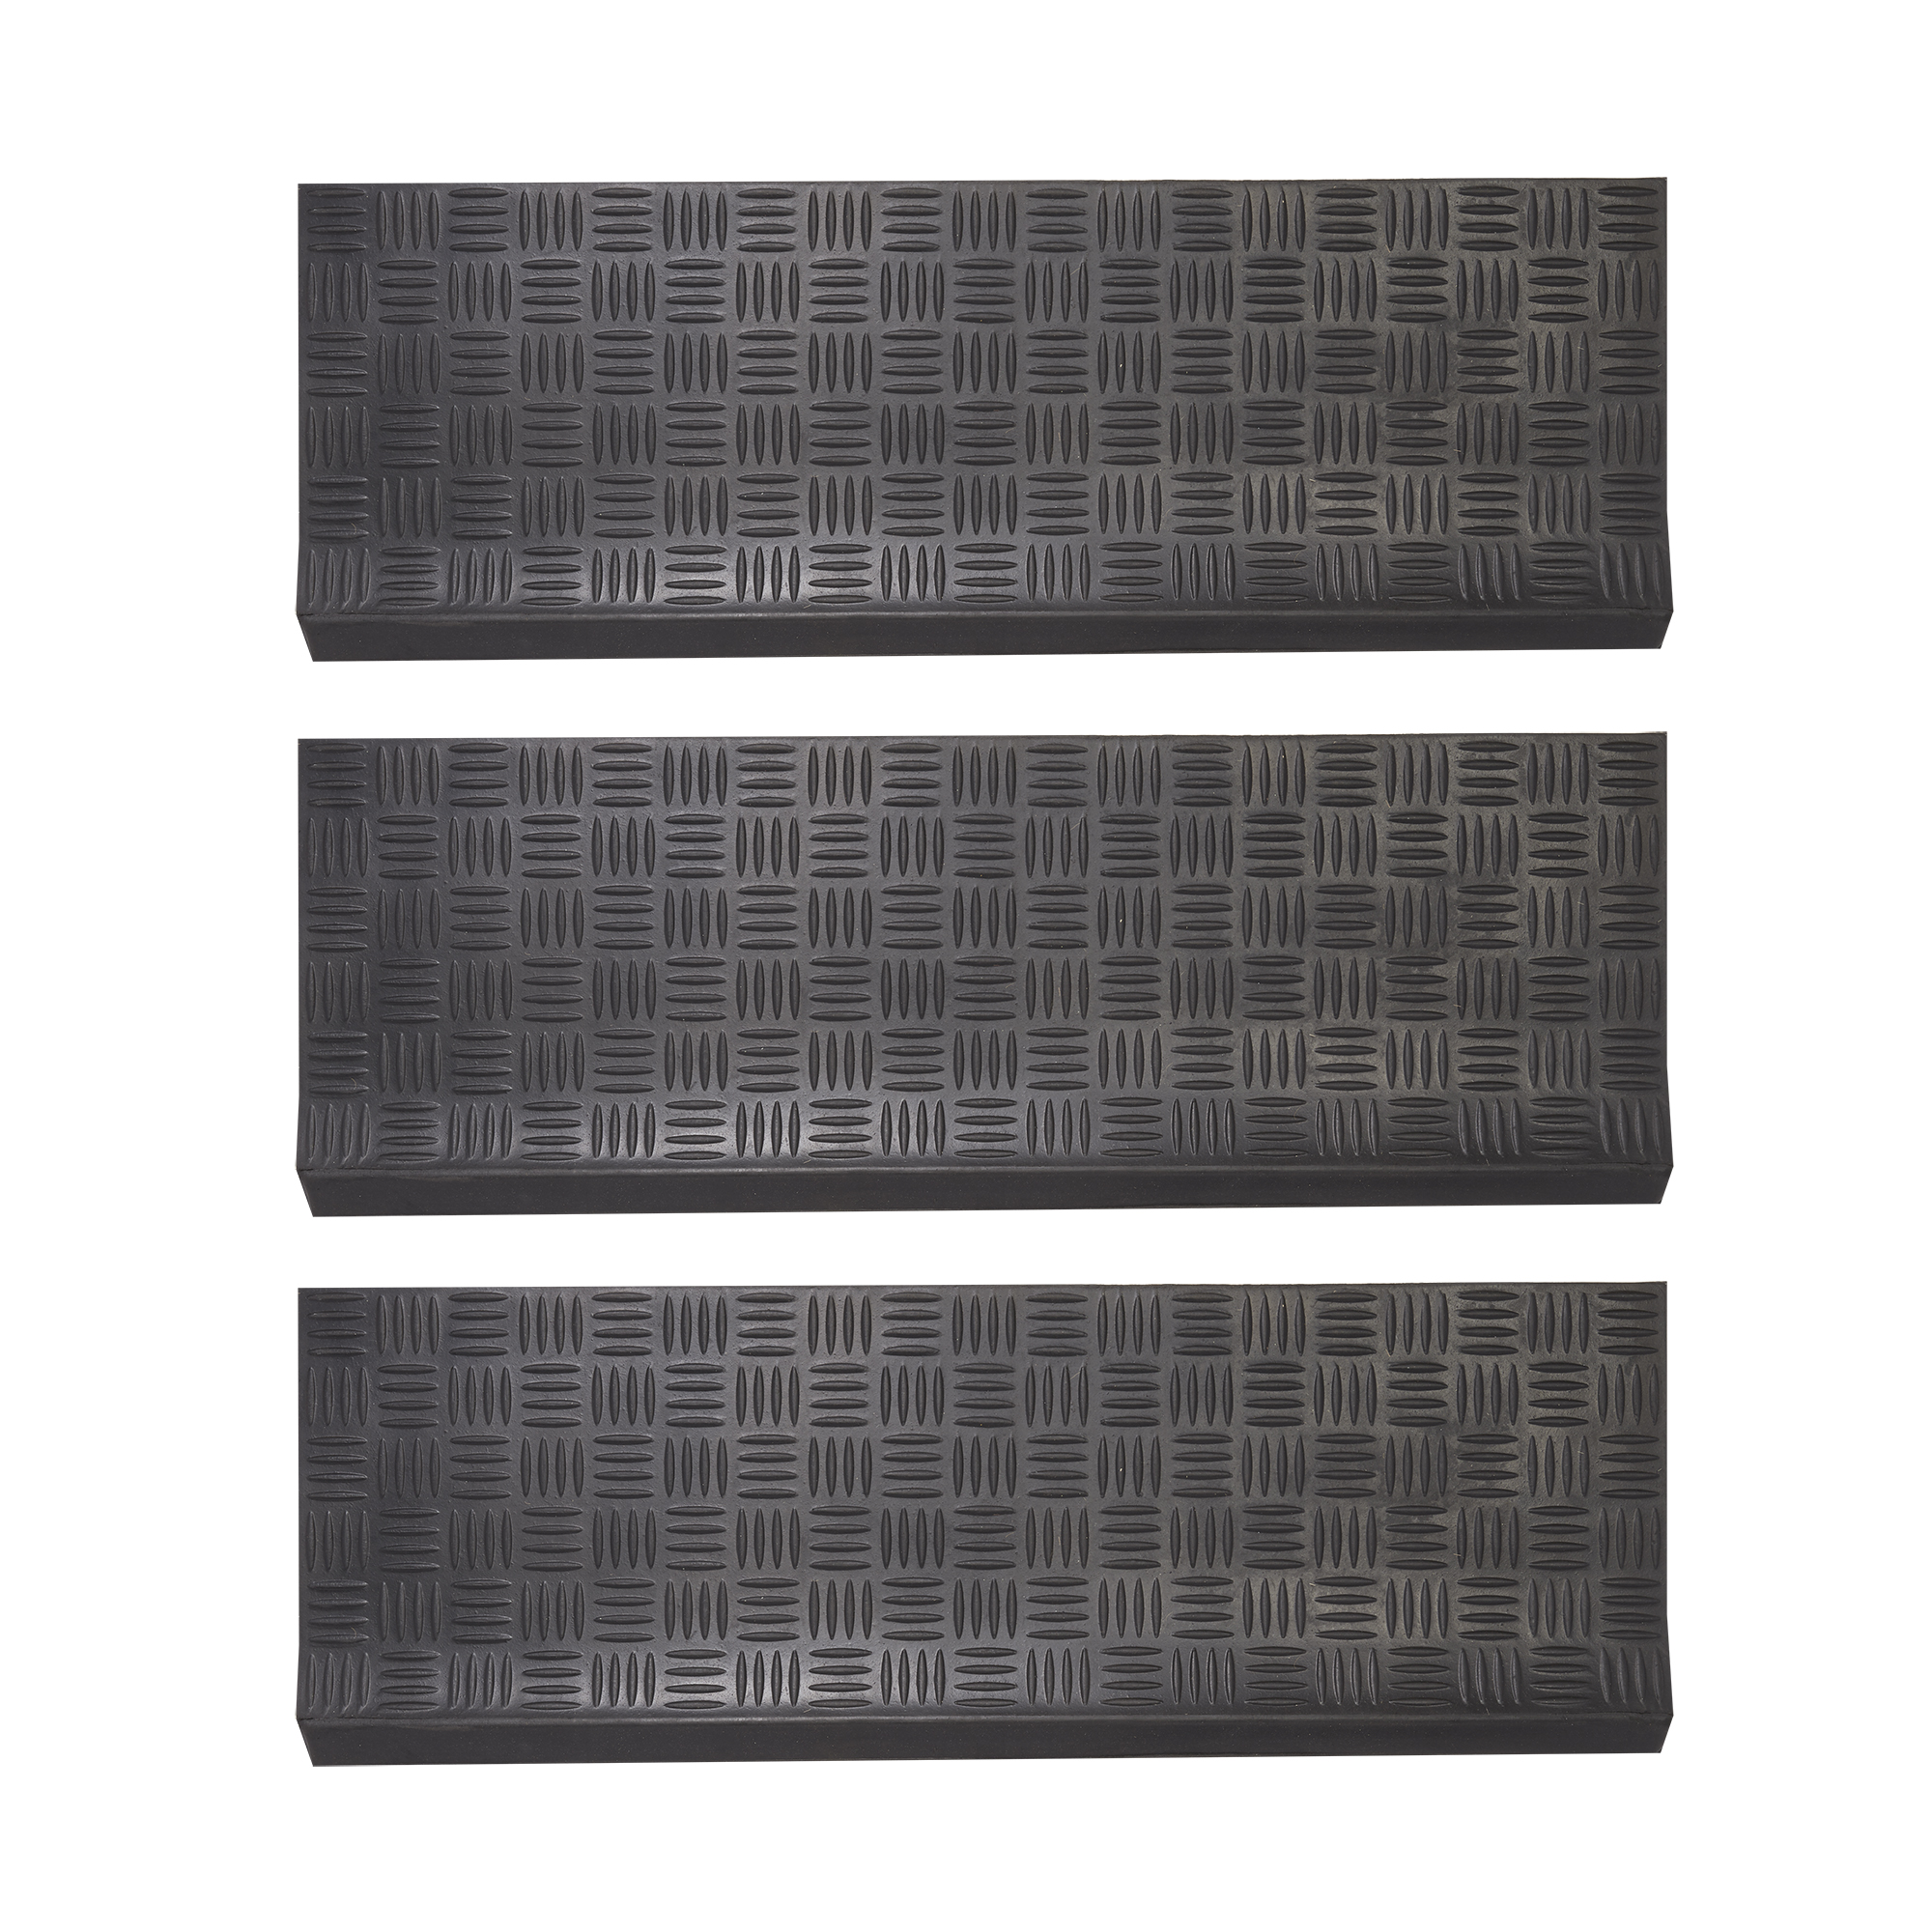 Envelor Home And Garden Indoor Outdoor Stair Treads Non Slip Rubber Stair  Mats Non Slip Stair Treads Weatherproof Staircase Step Treads Skid  Resistant ...